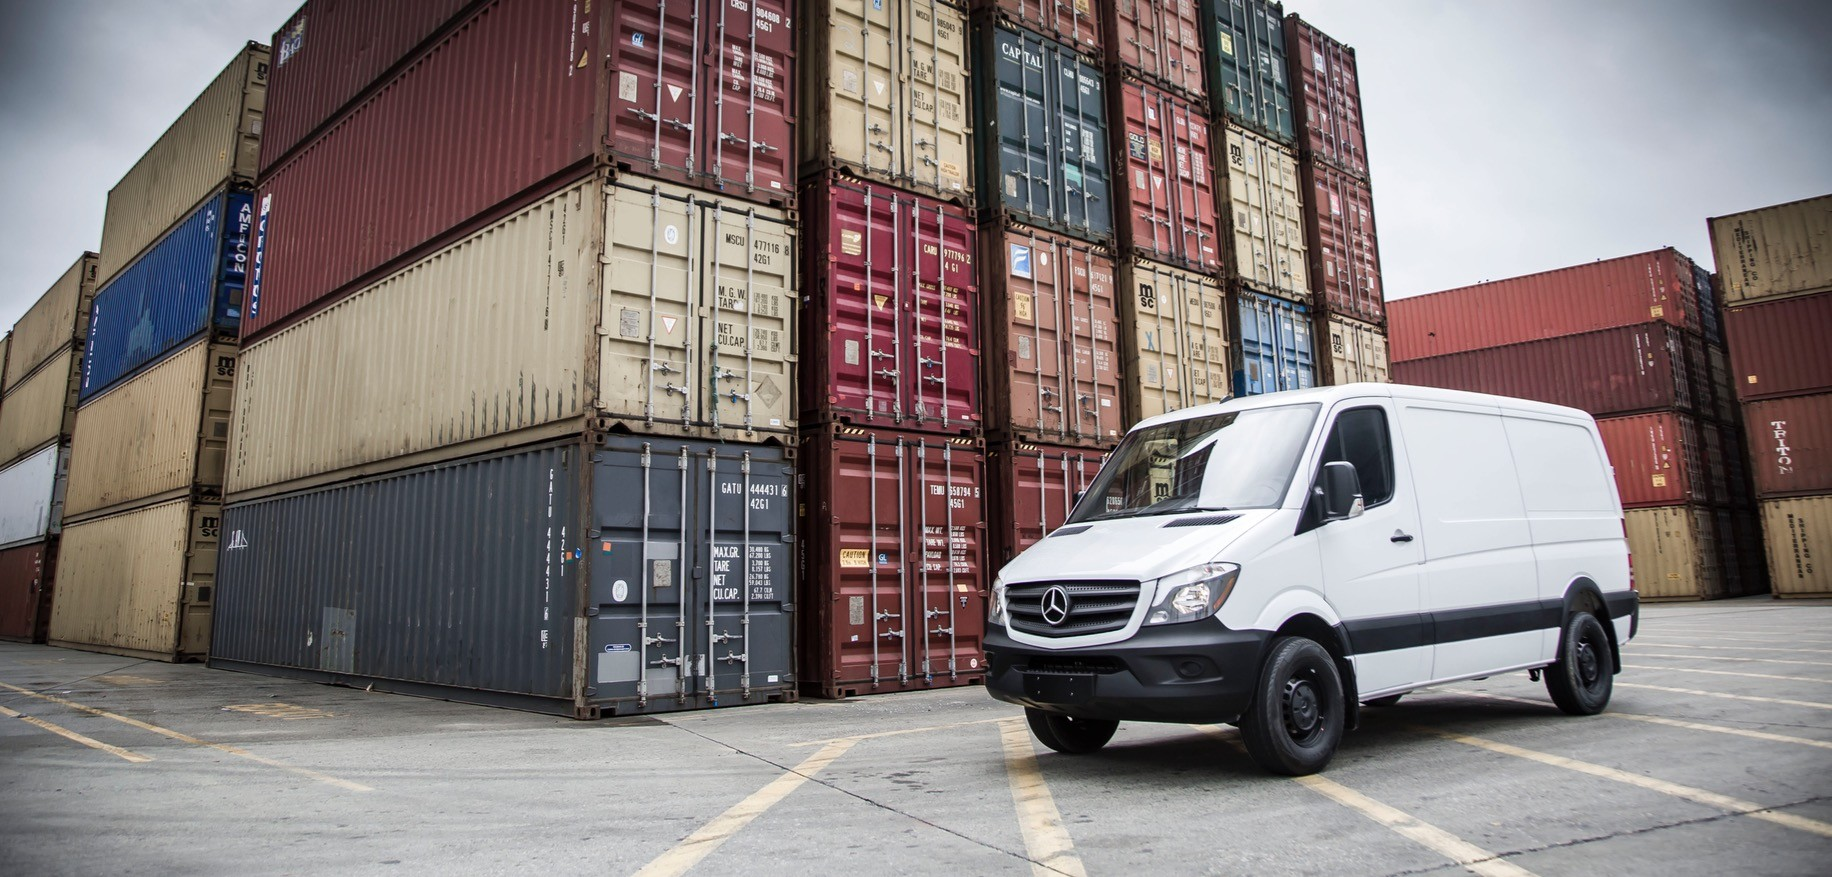 mercedes benz starts construction work on u s sprinter van factory autoevolution. Black Bedroom Furniture Sets. Home Design Ideas